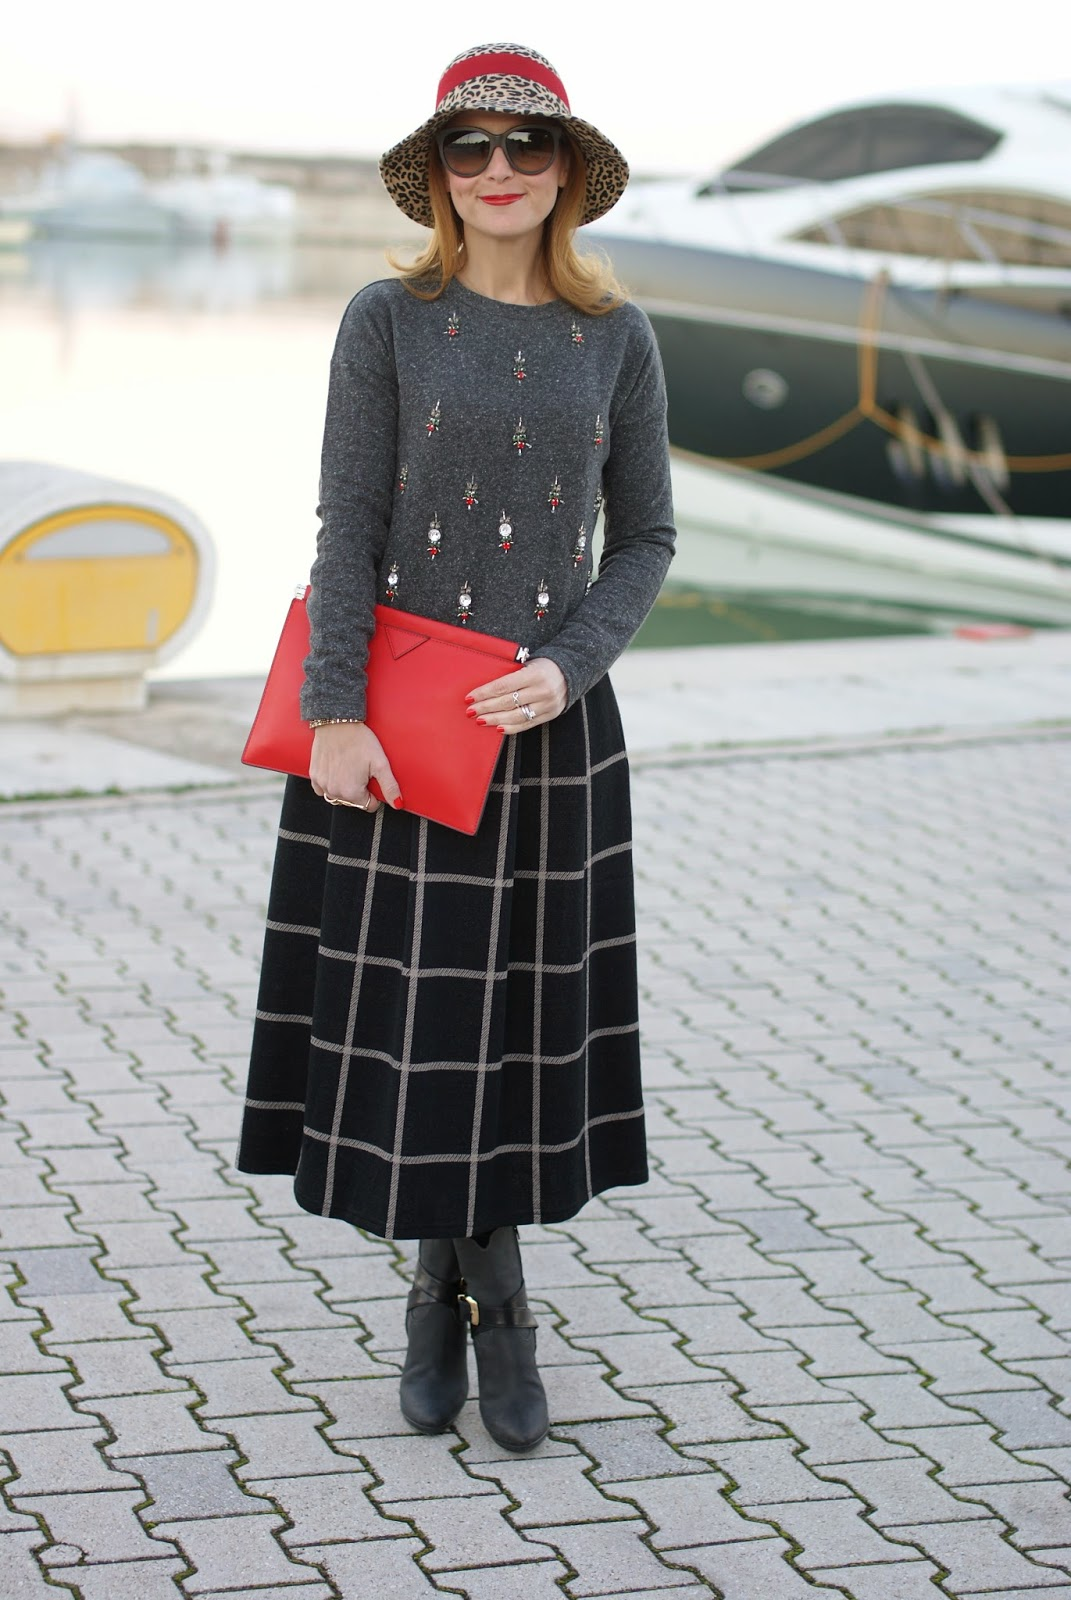 rhinestones sweatshirt, check midi skirt, red clutch, Fashion and Cookies, fashion blogger